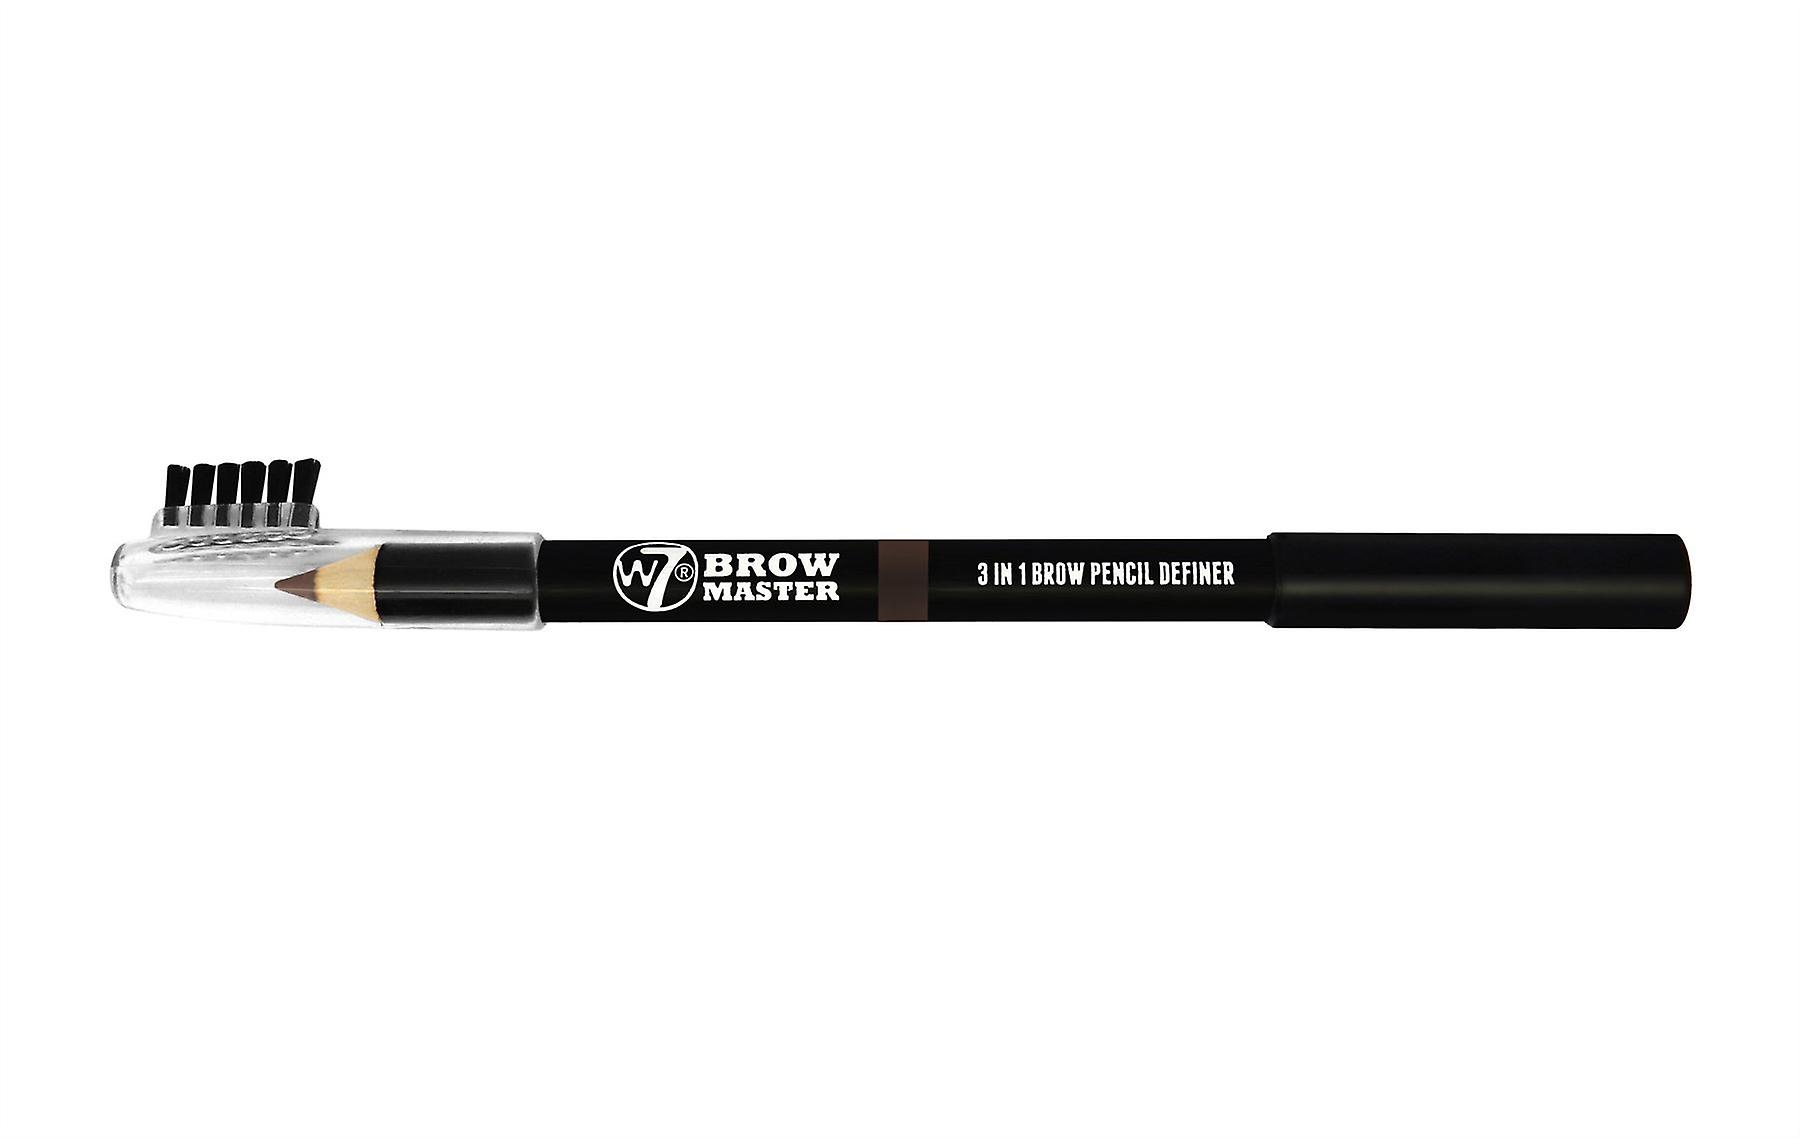 W7 Brow Master Pencil RED/BROWN